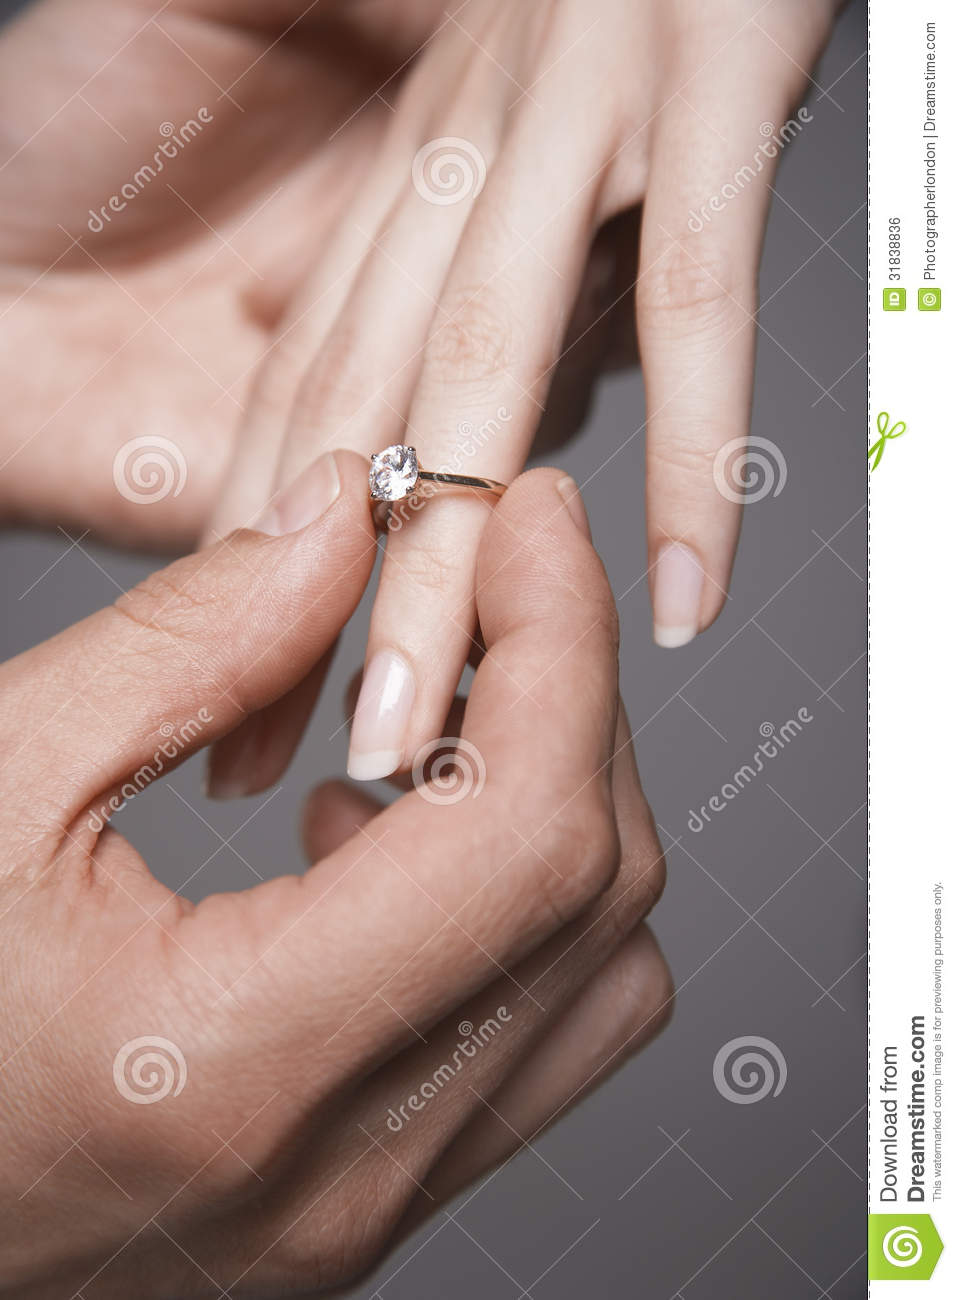 Man Placing Engagement Ring In Woman's Finger Royalty Free ...